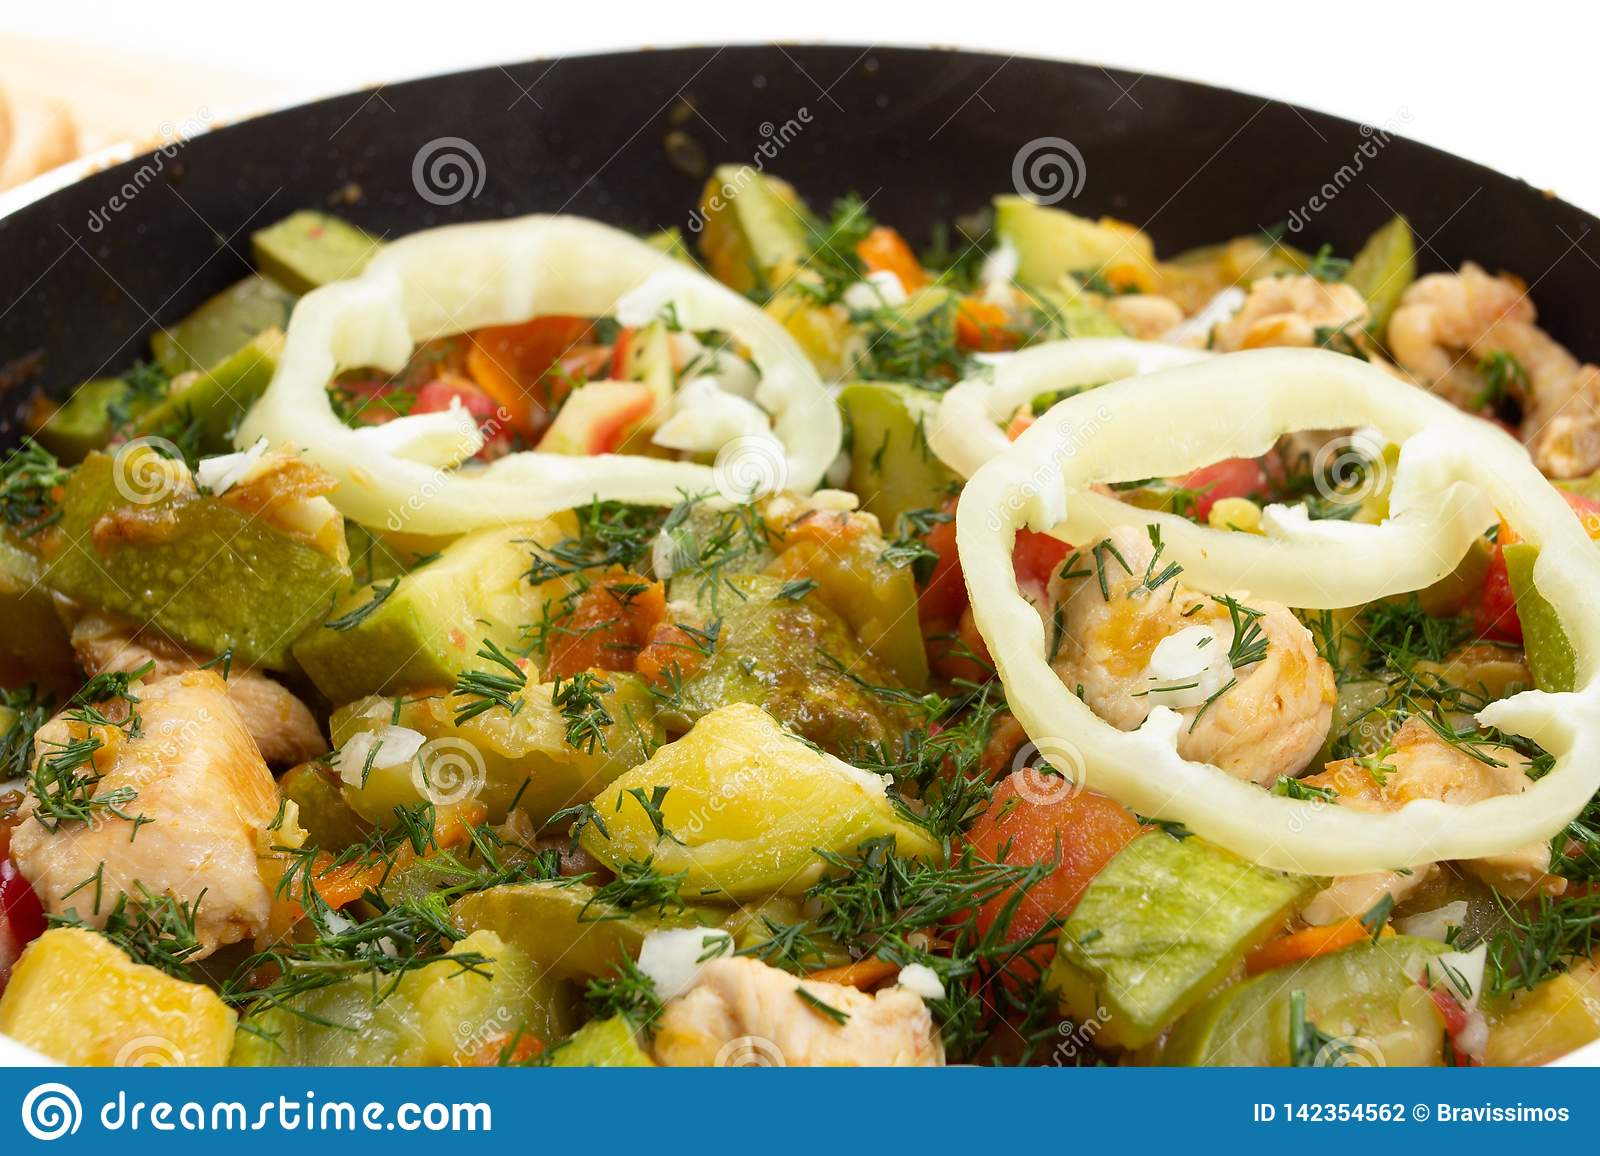 Chicken. carrot and zucchini on pan vegetable food, cooking